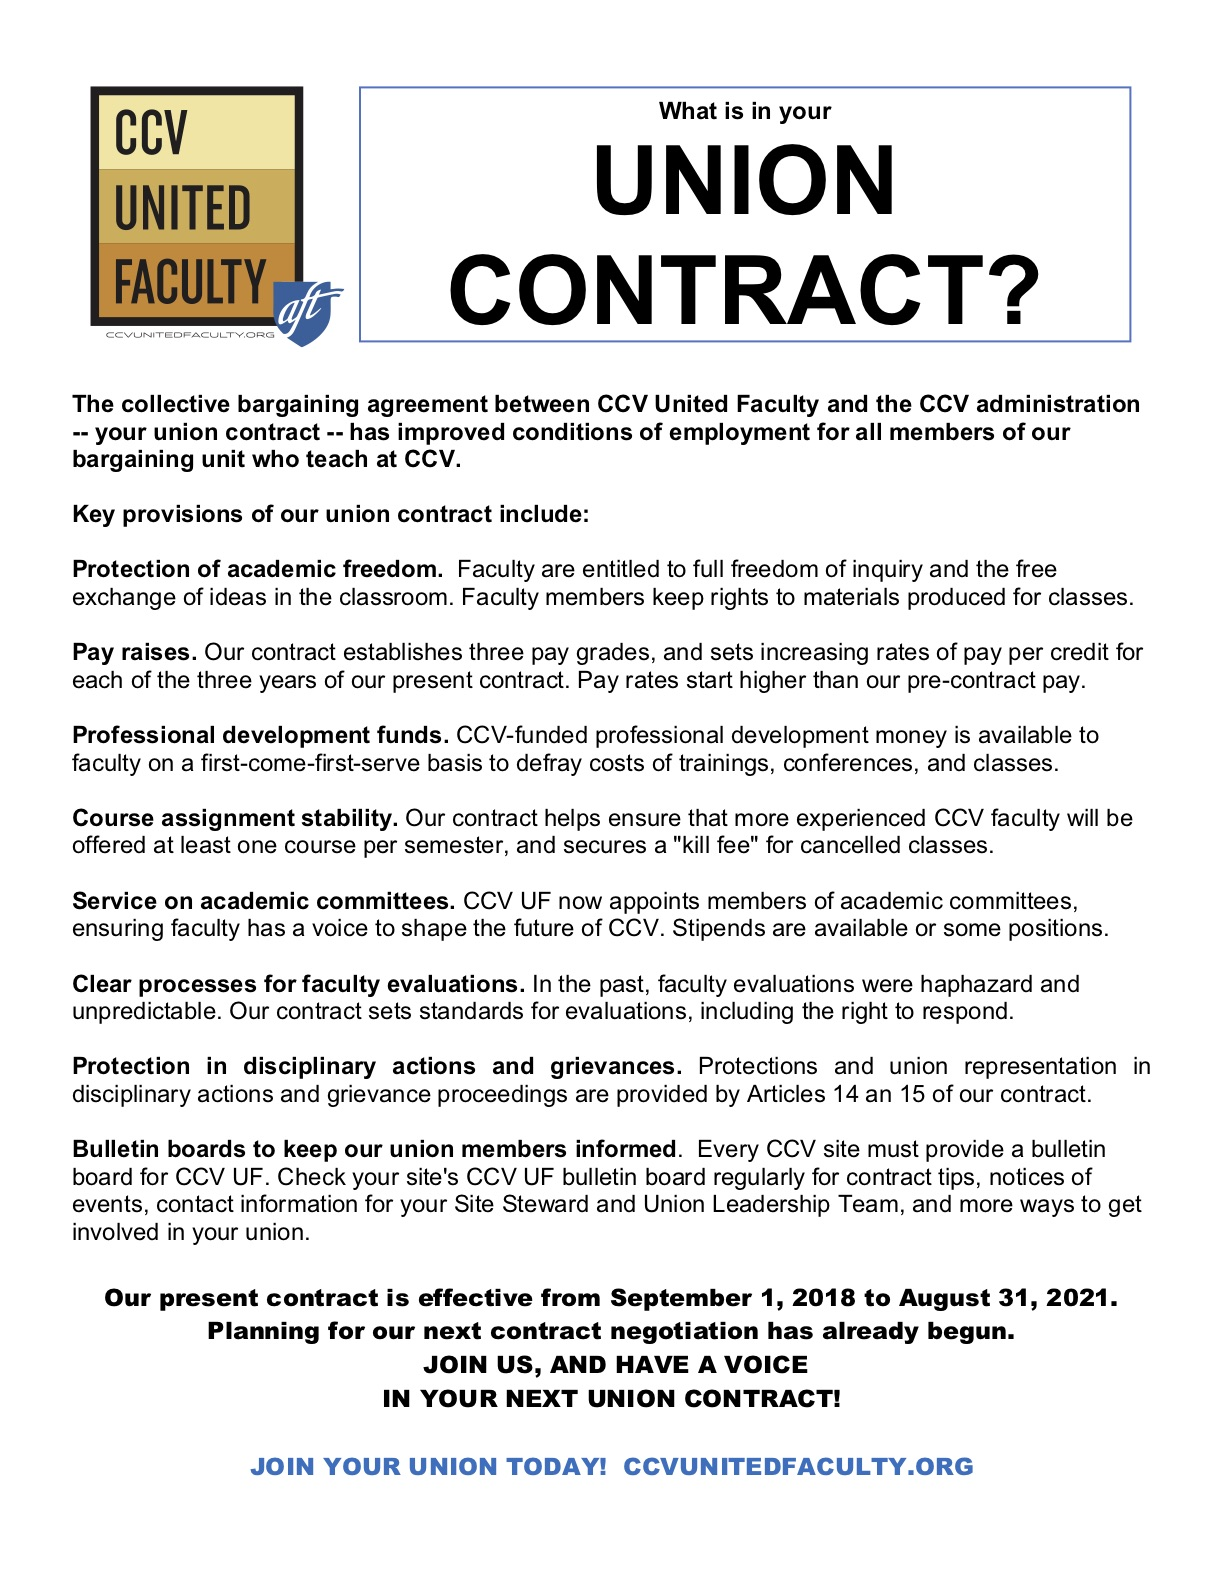 What Is In Your Union Contract?